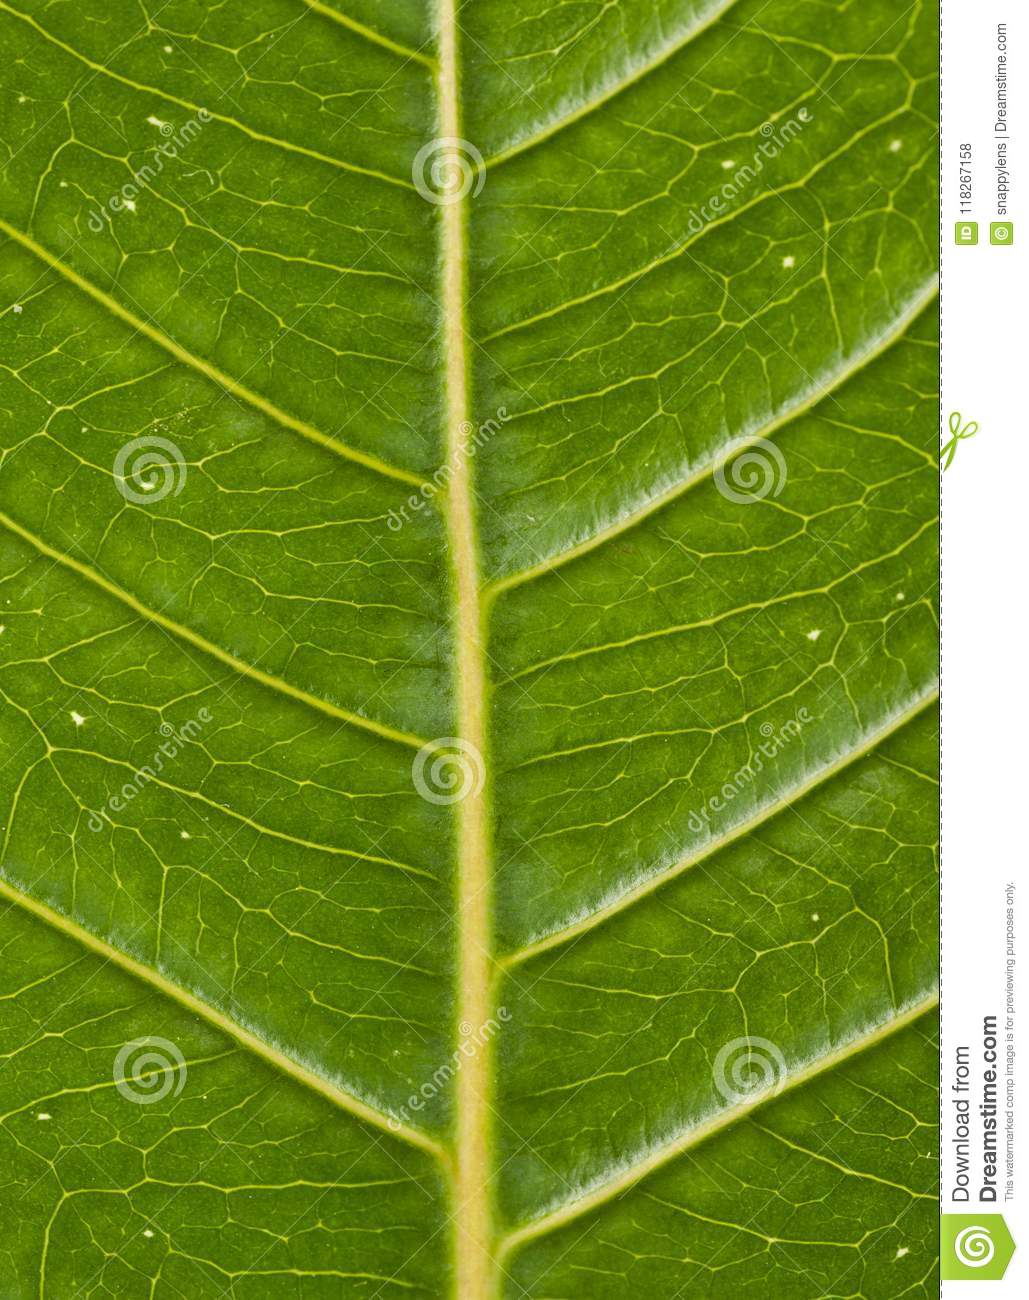 Veins of a green leaf showing angles